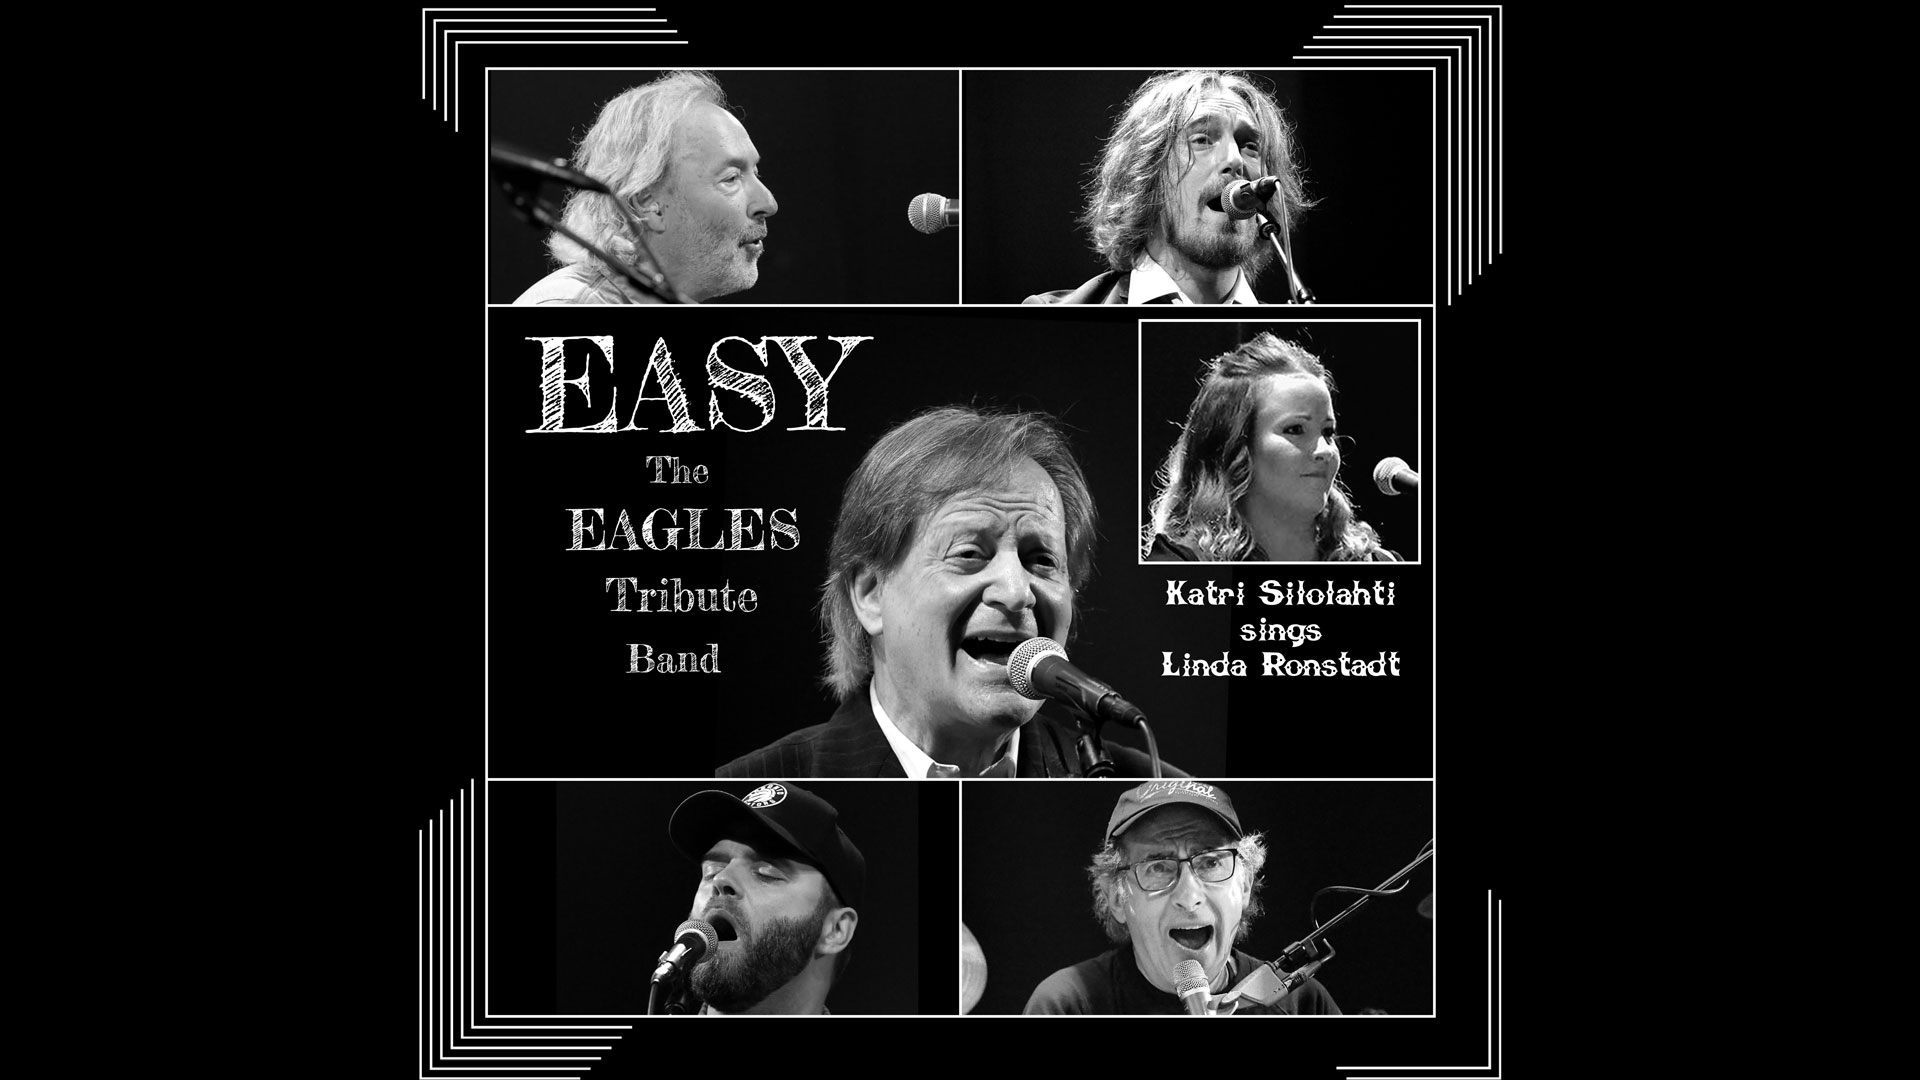 Easy - The Eagles Tribute Band pe 19.2.2021 klo 19.00